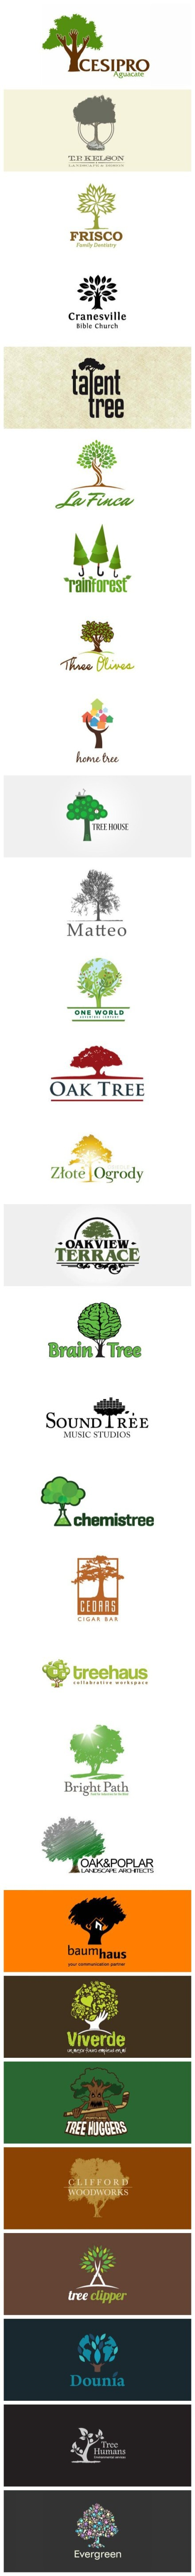 A range of the best tree logos from around the world! #logoswithtrees